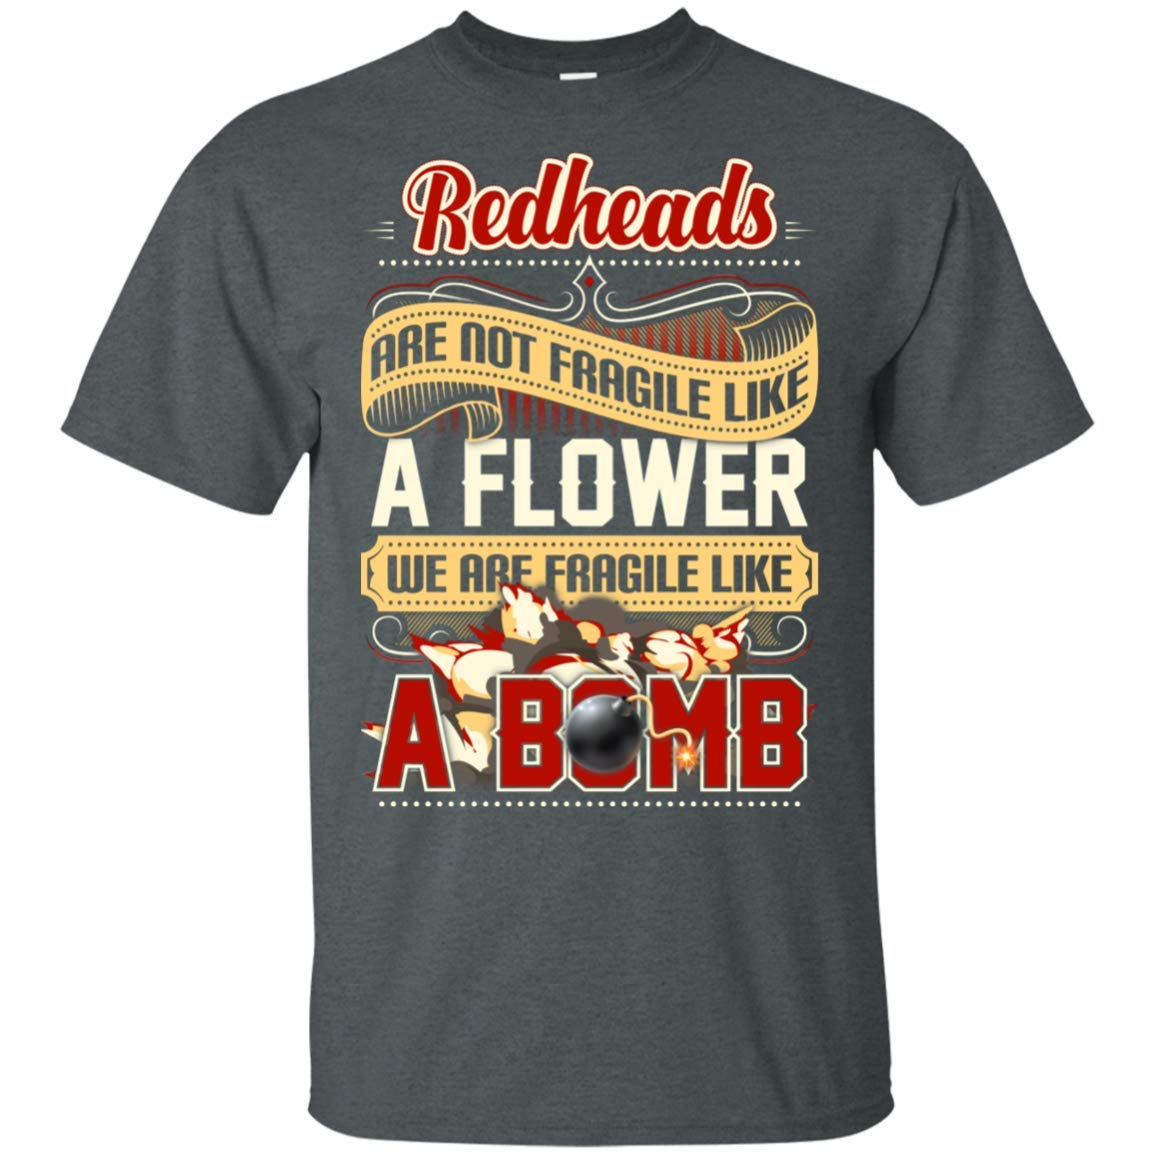 Heads Are Not Fragile Like A Flower We Are Fragile Like A Bomb T Shirt 3549